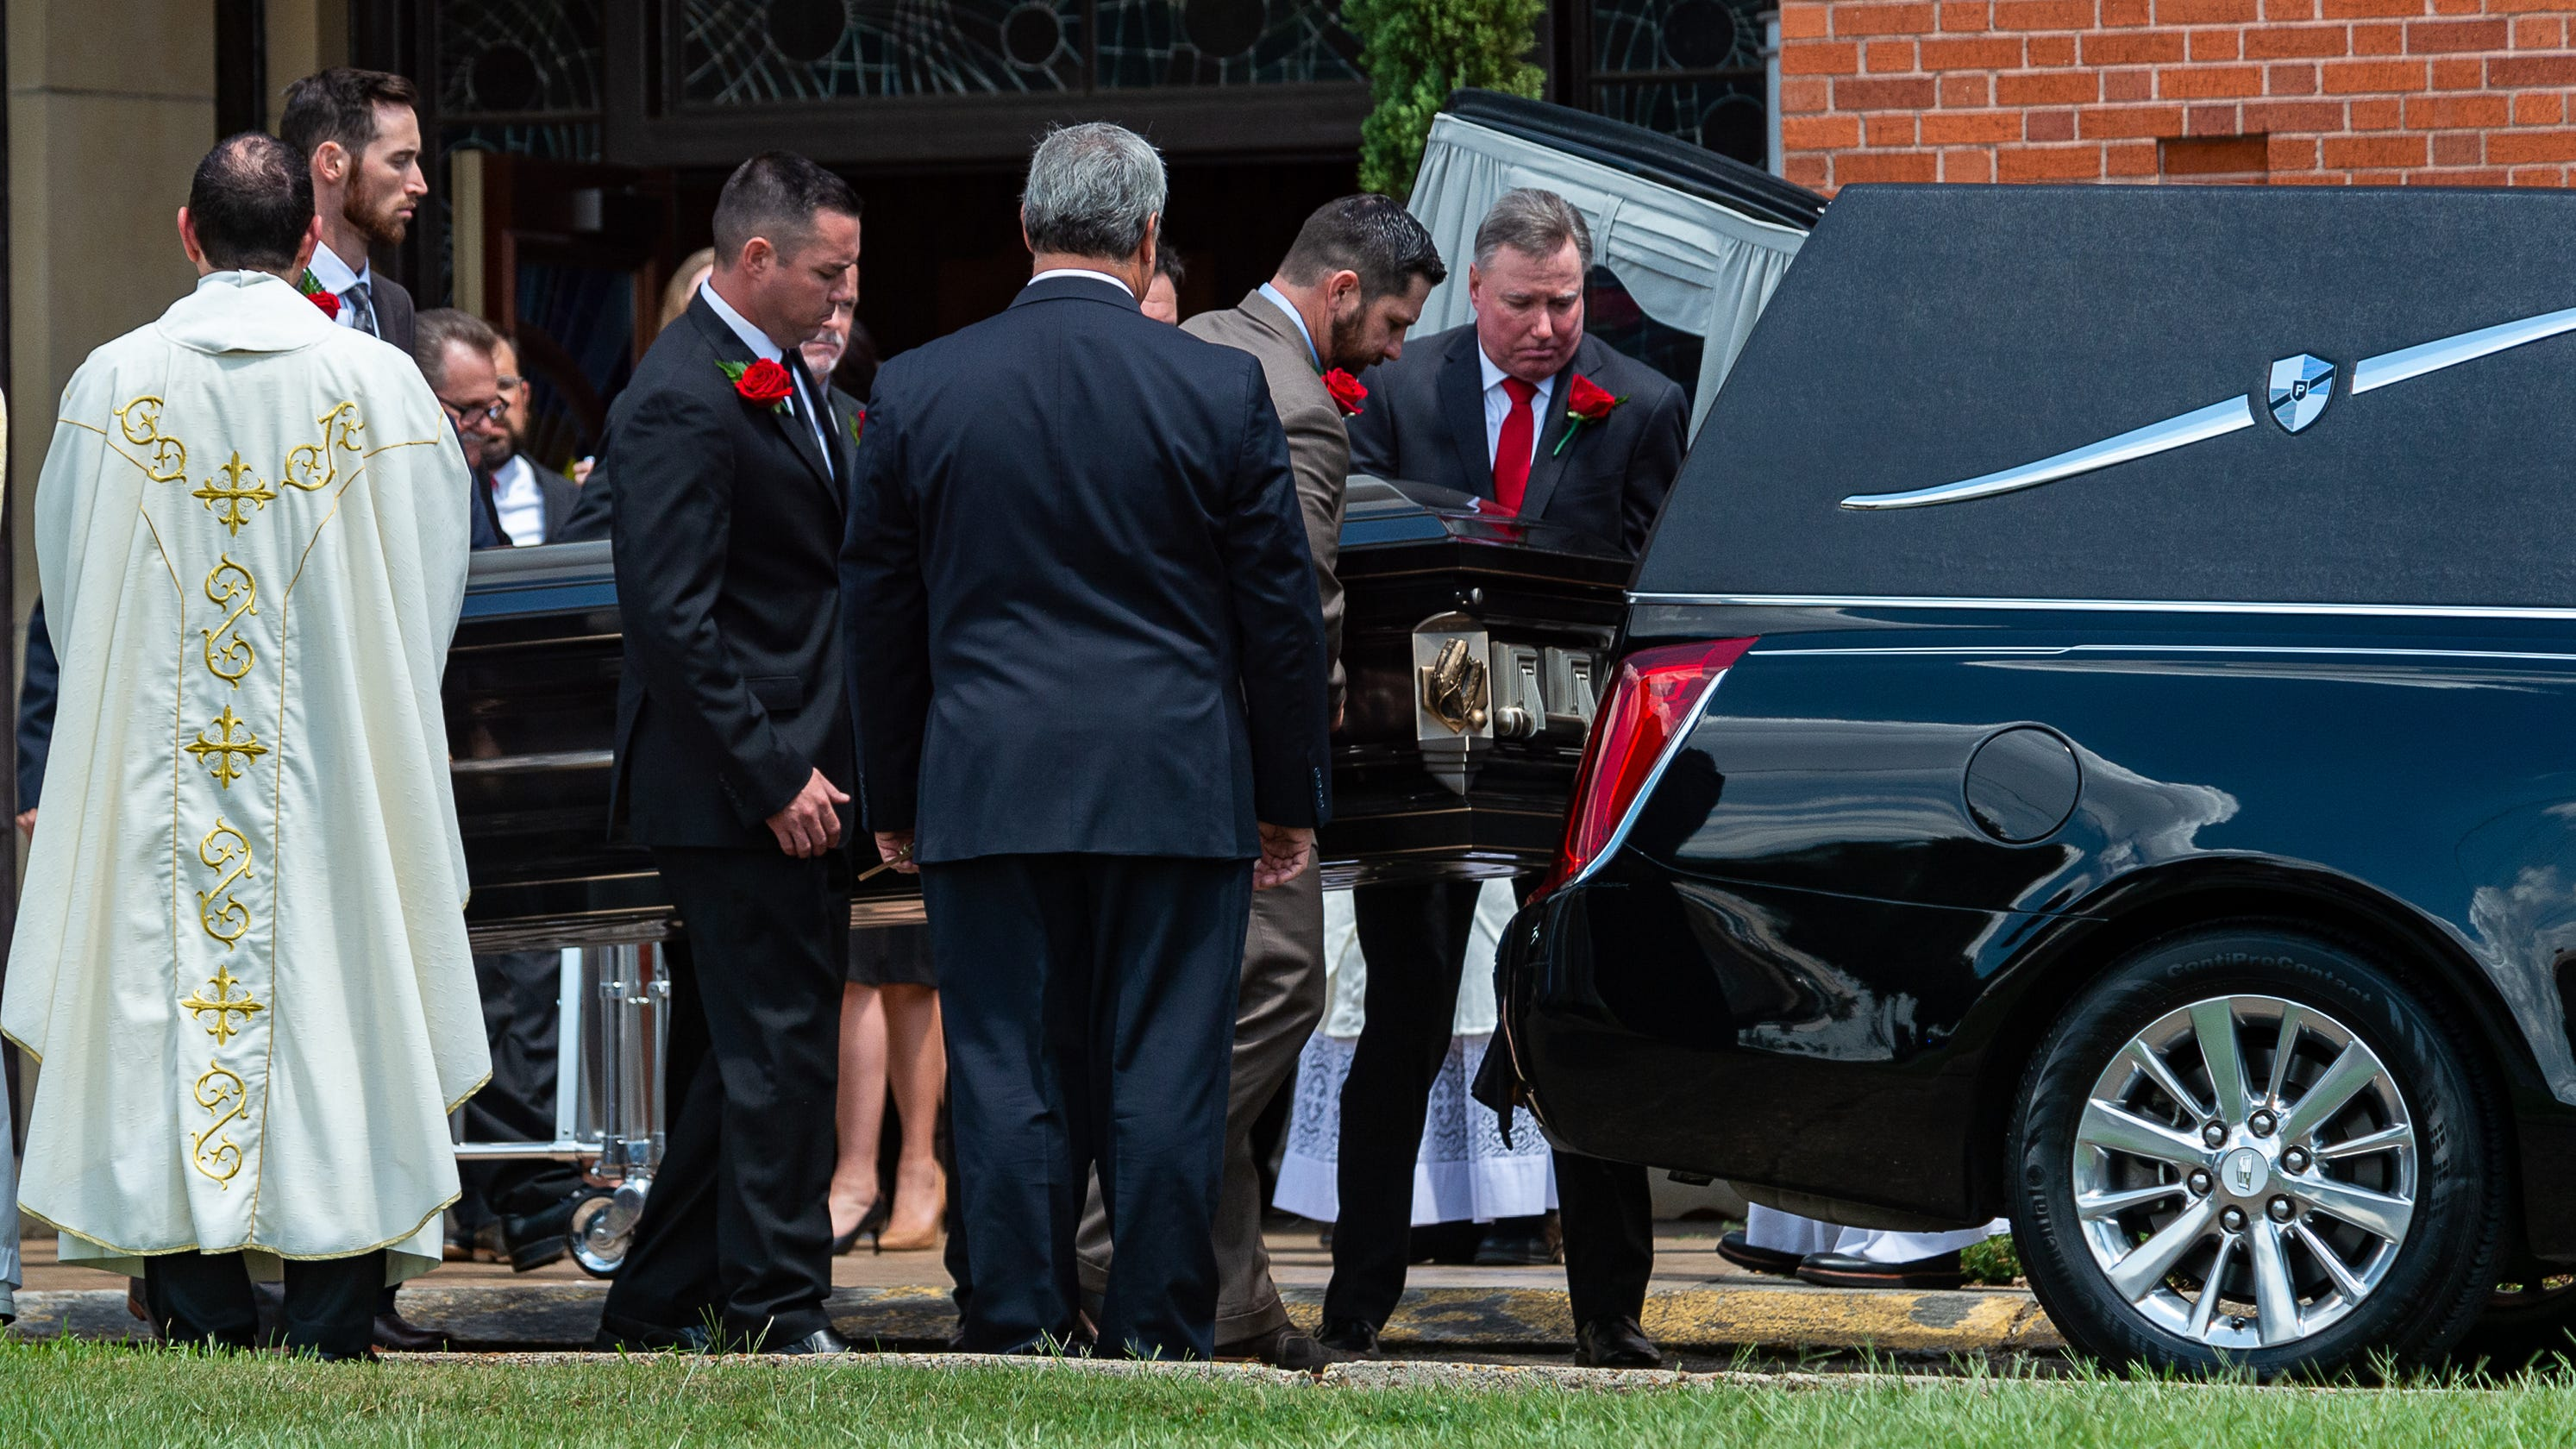 More than 1,200 remember UL coach Tony Robichaux at service